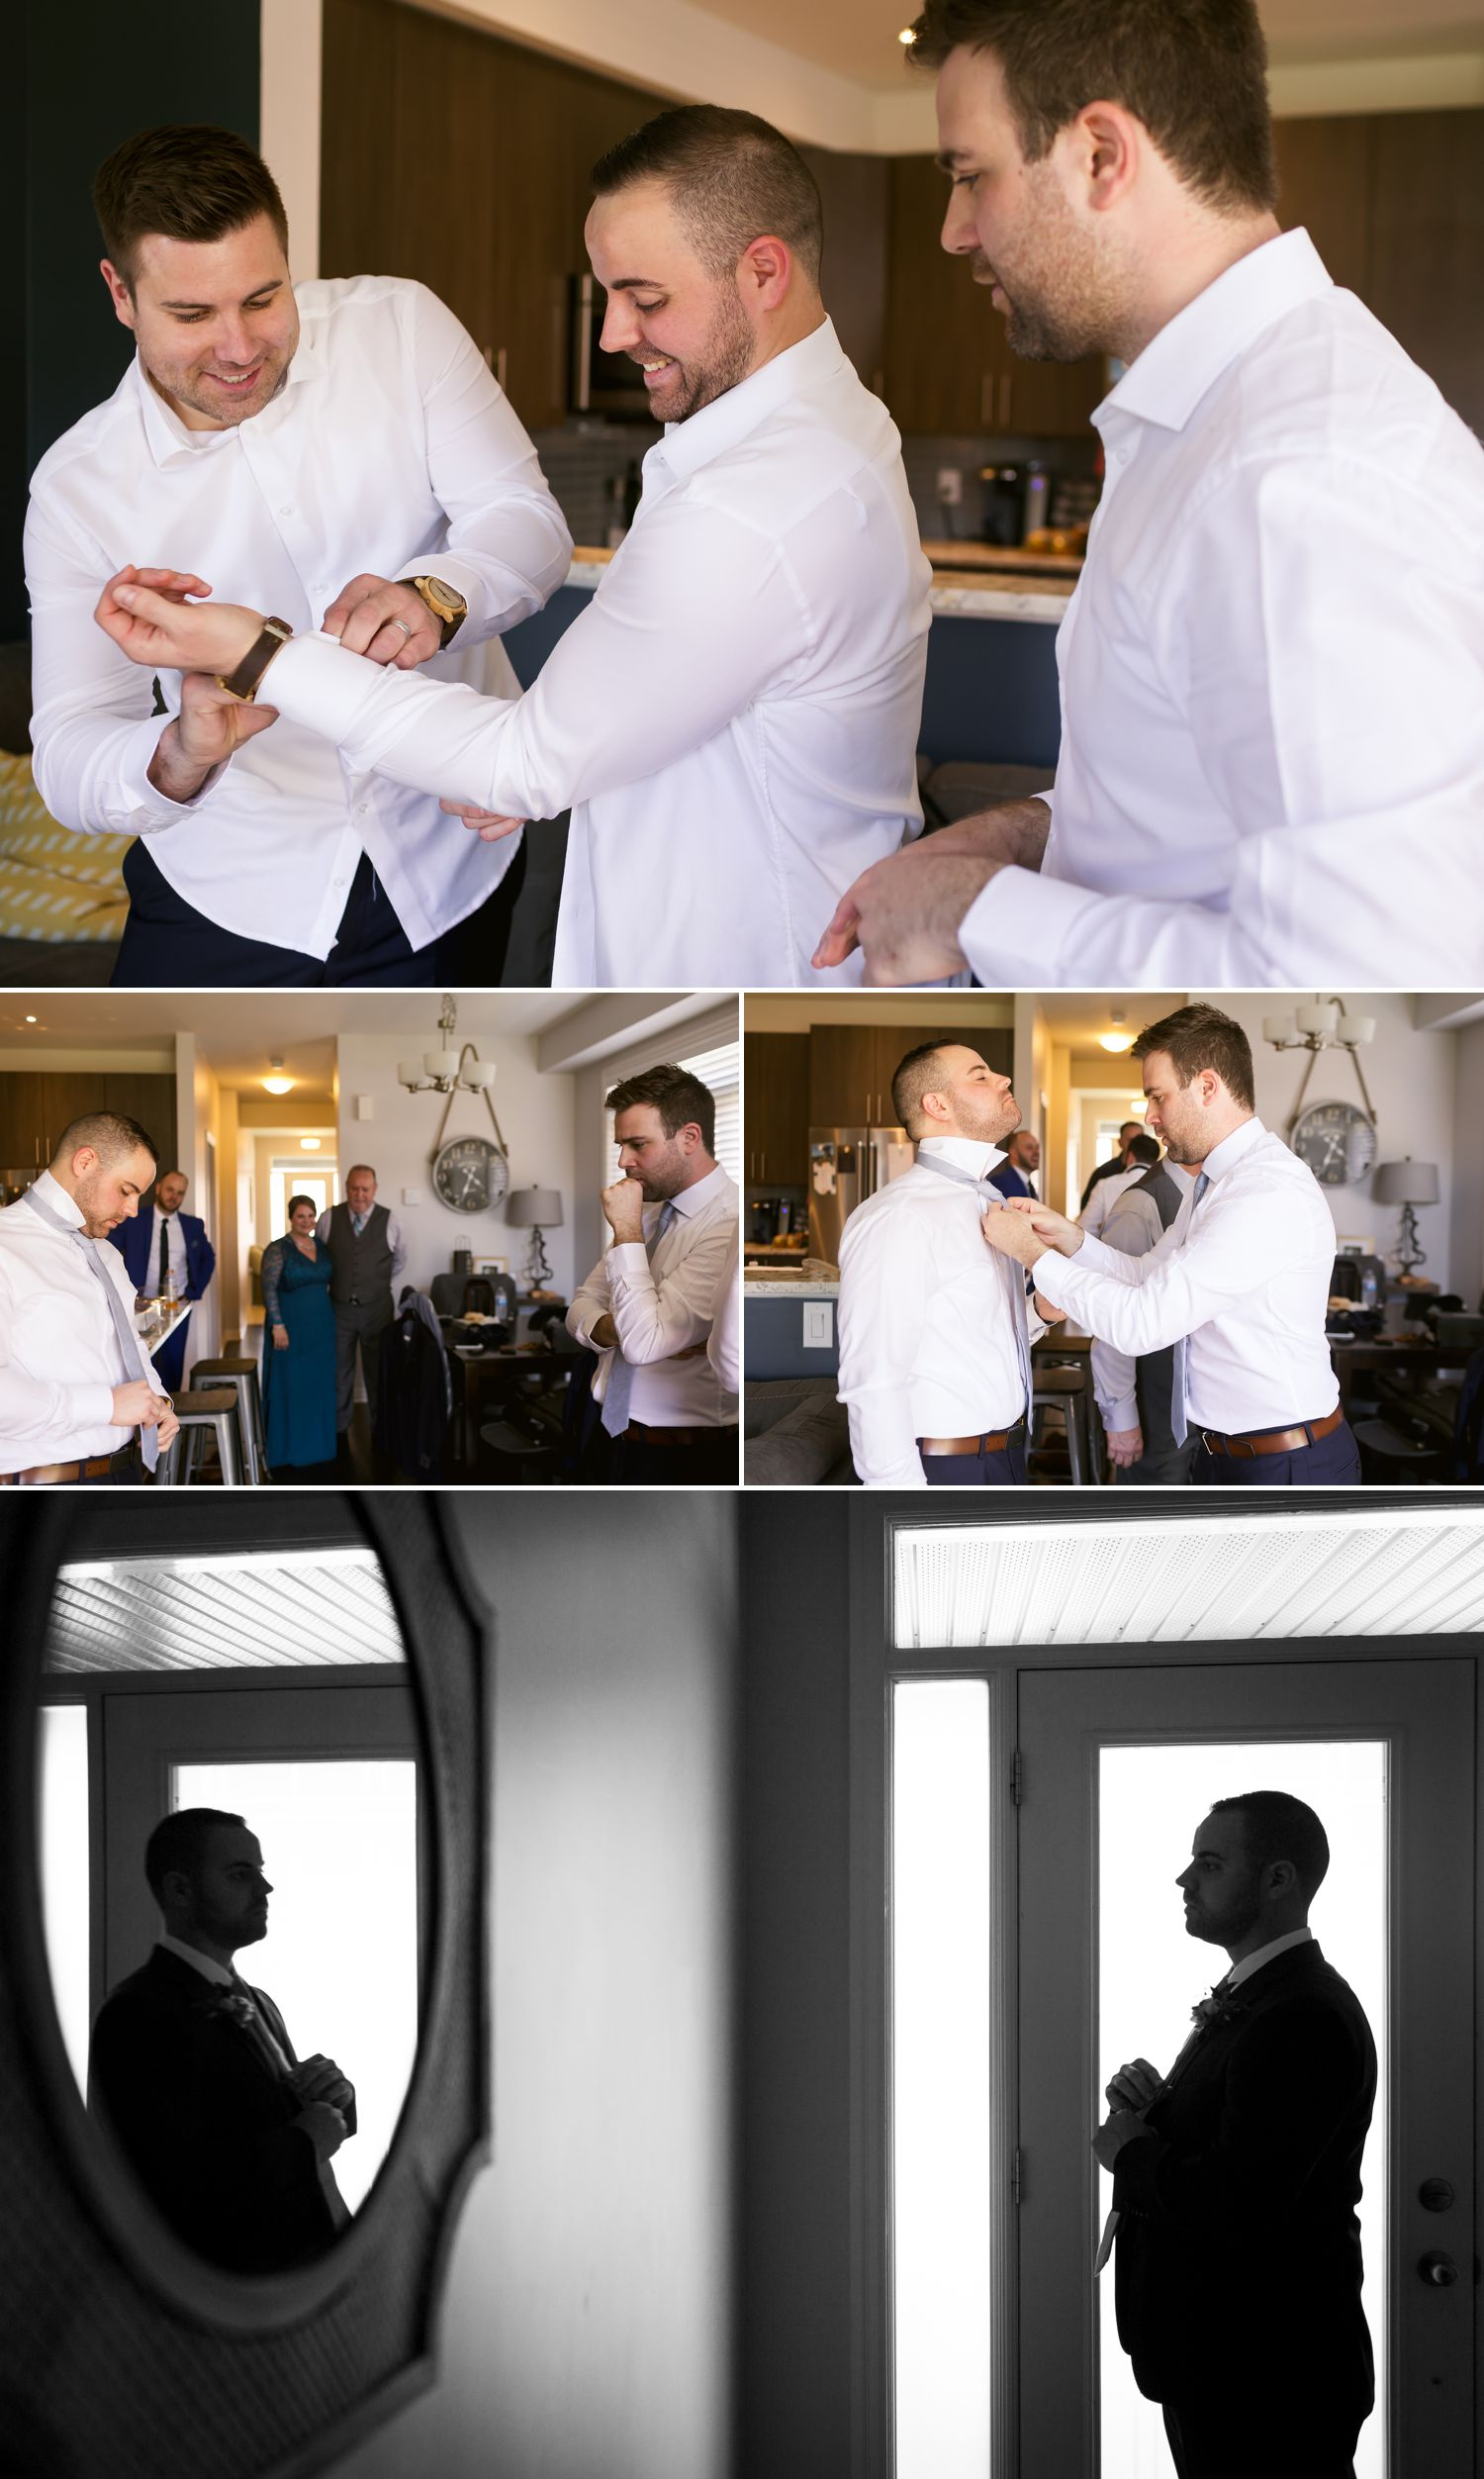 The groom with his groomsmen getting ready before the wedding at their home in Ottawa